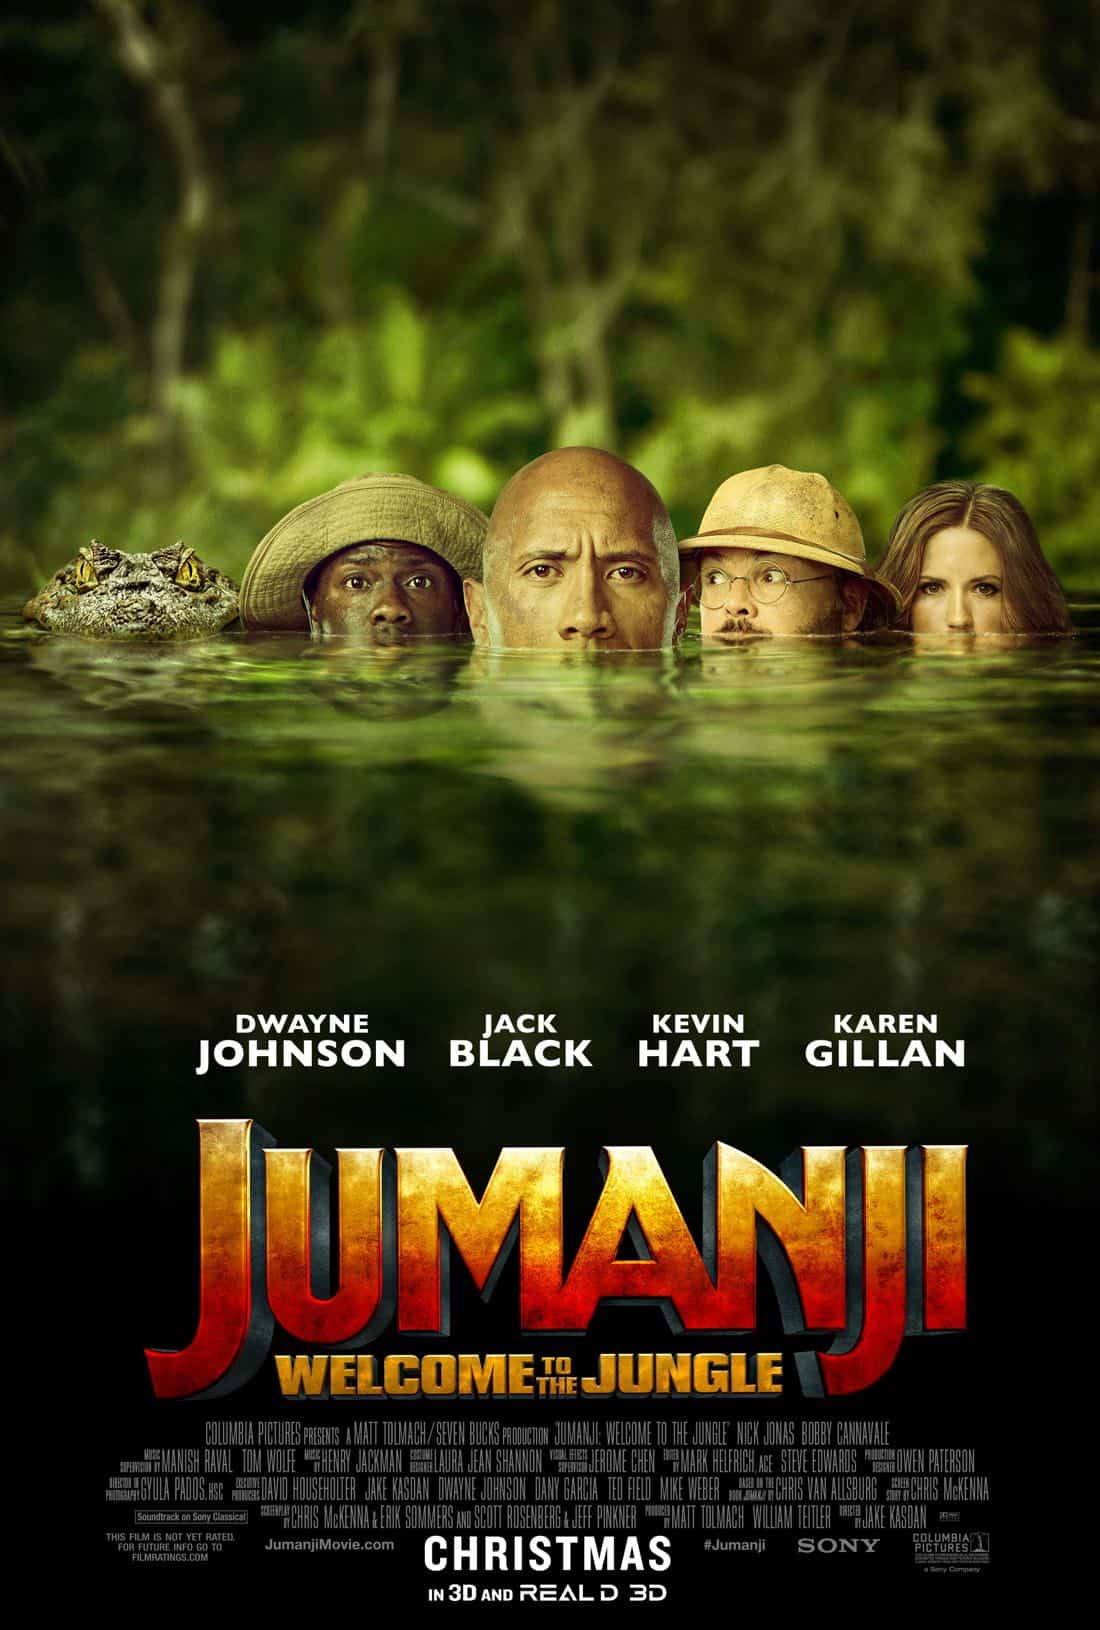 Jumanji-Welcome-To-The-Jungle-Movie-Poster